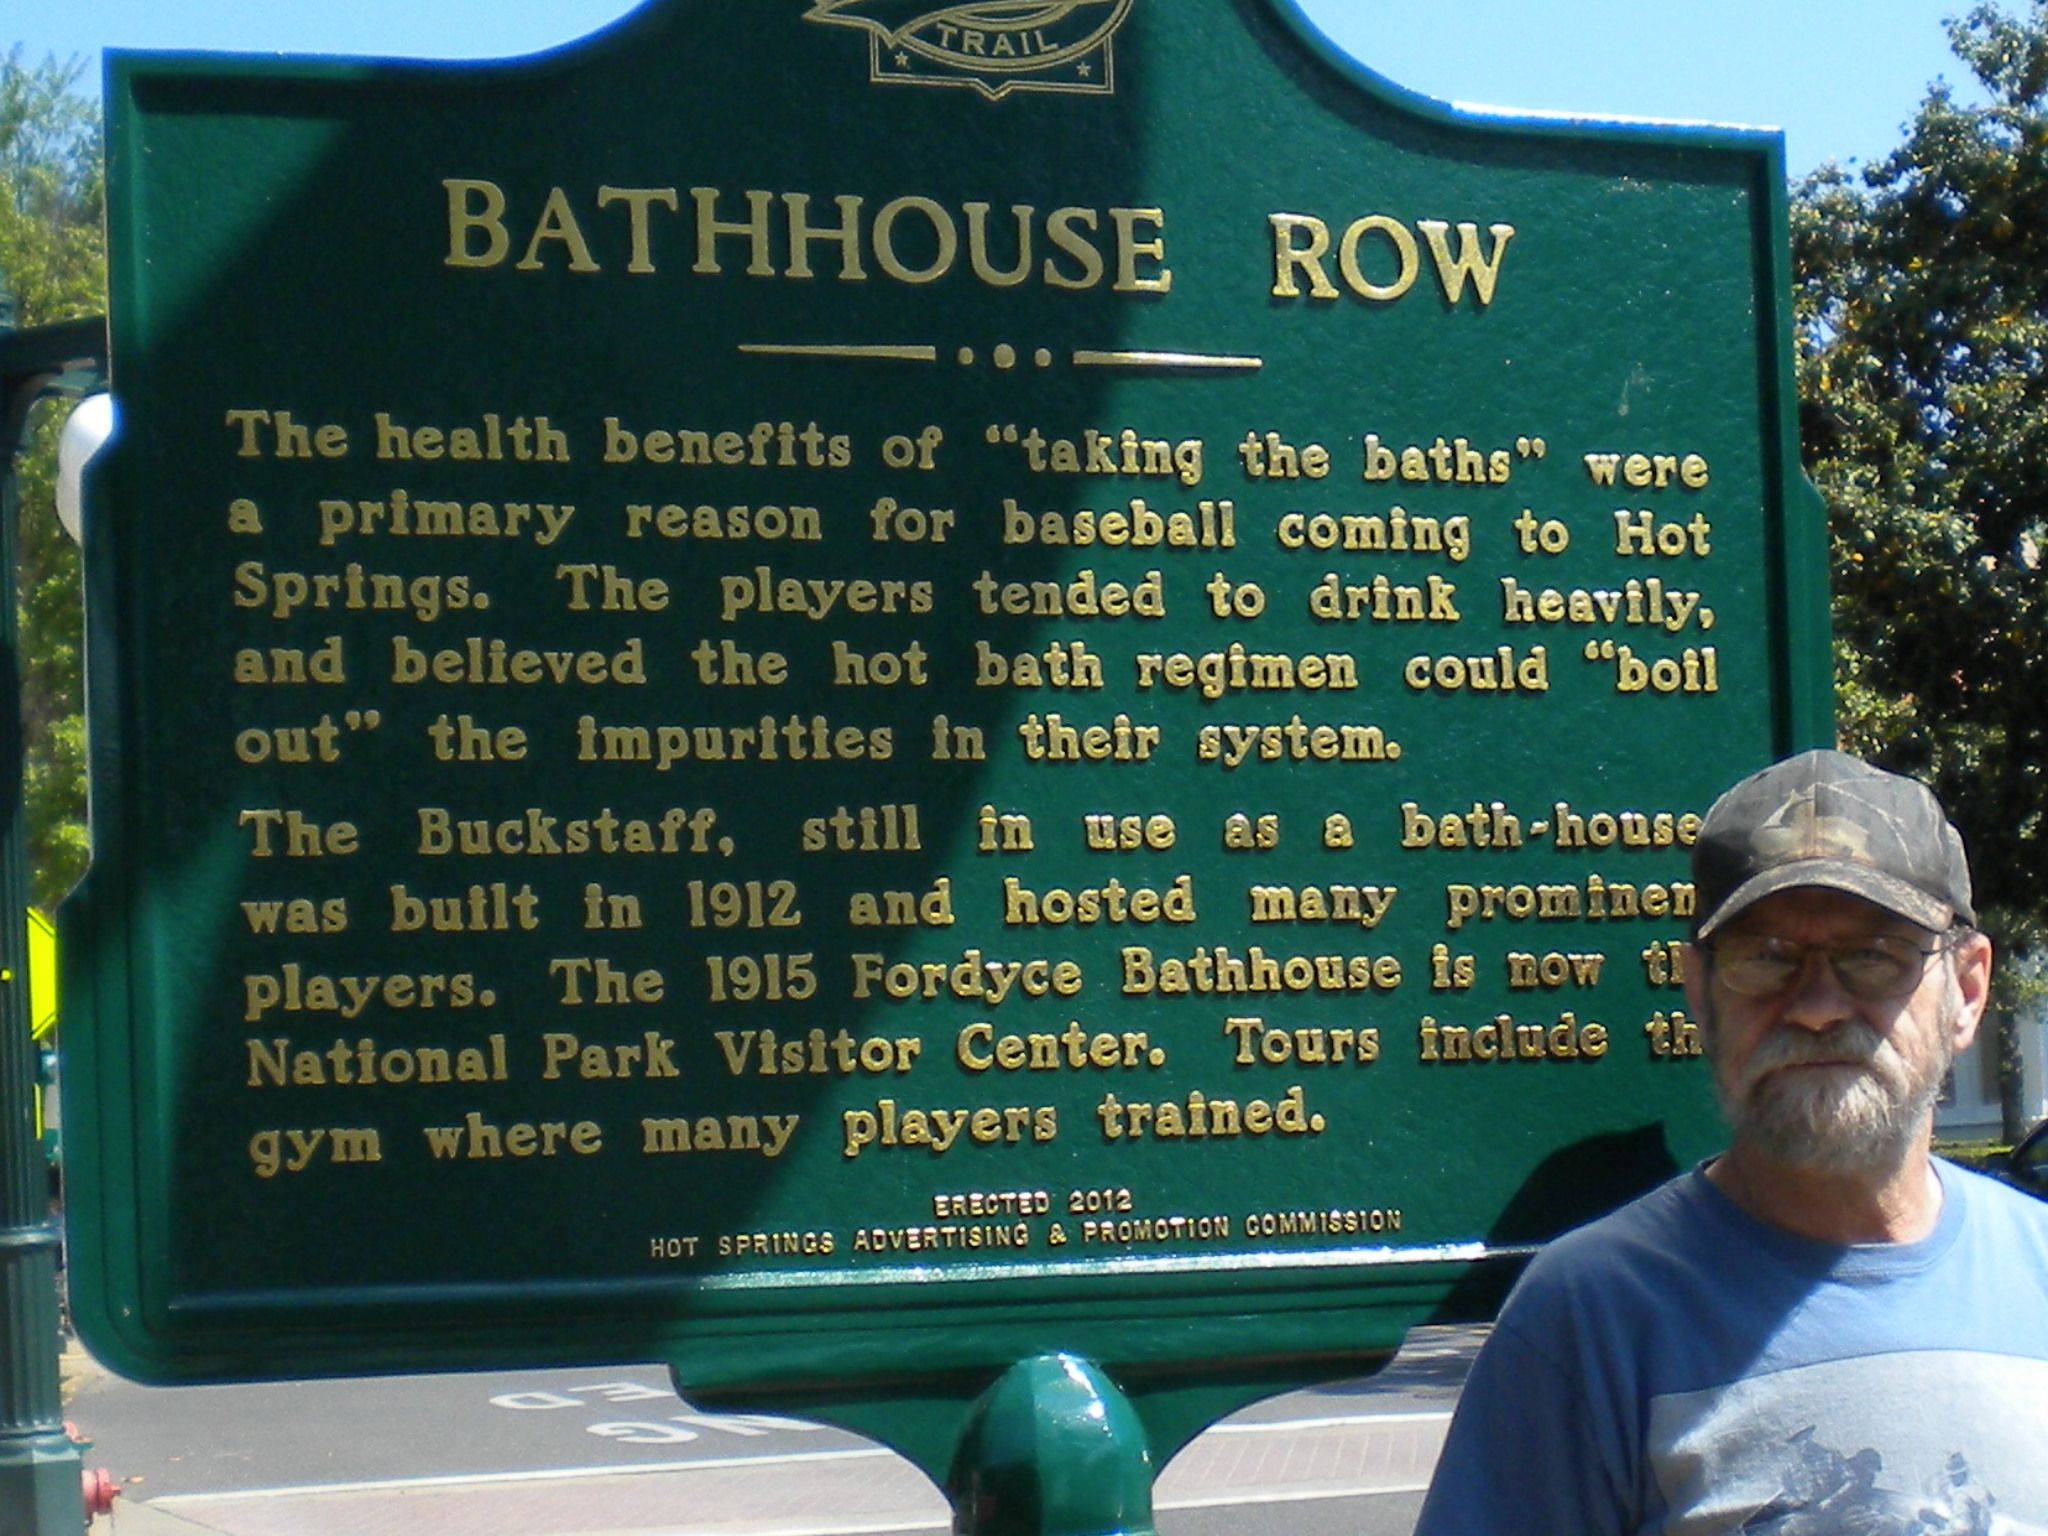 Markers will tell the story of early teams and players in Hot Springs Arkansas